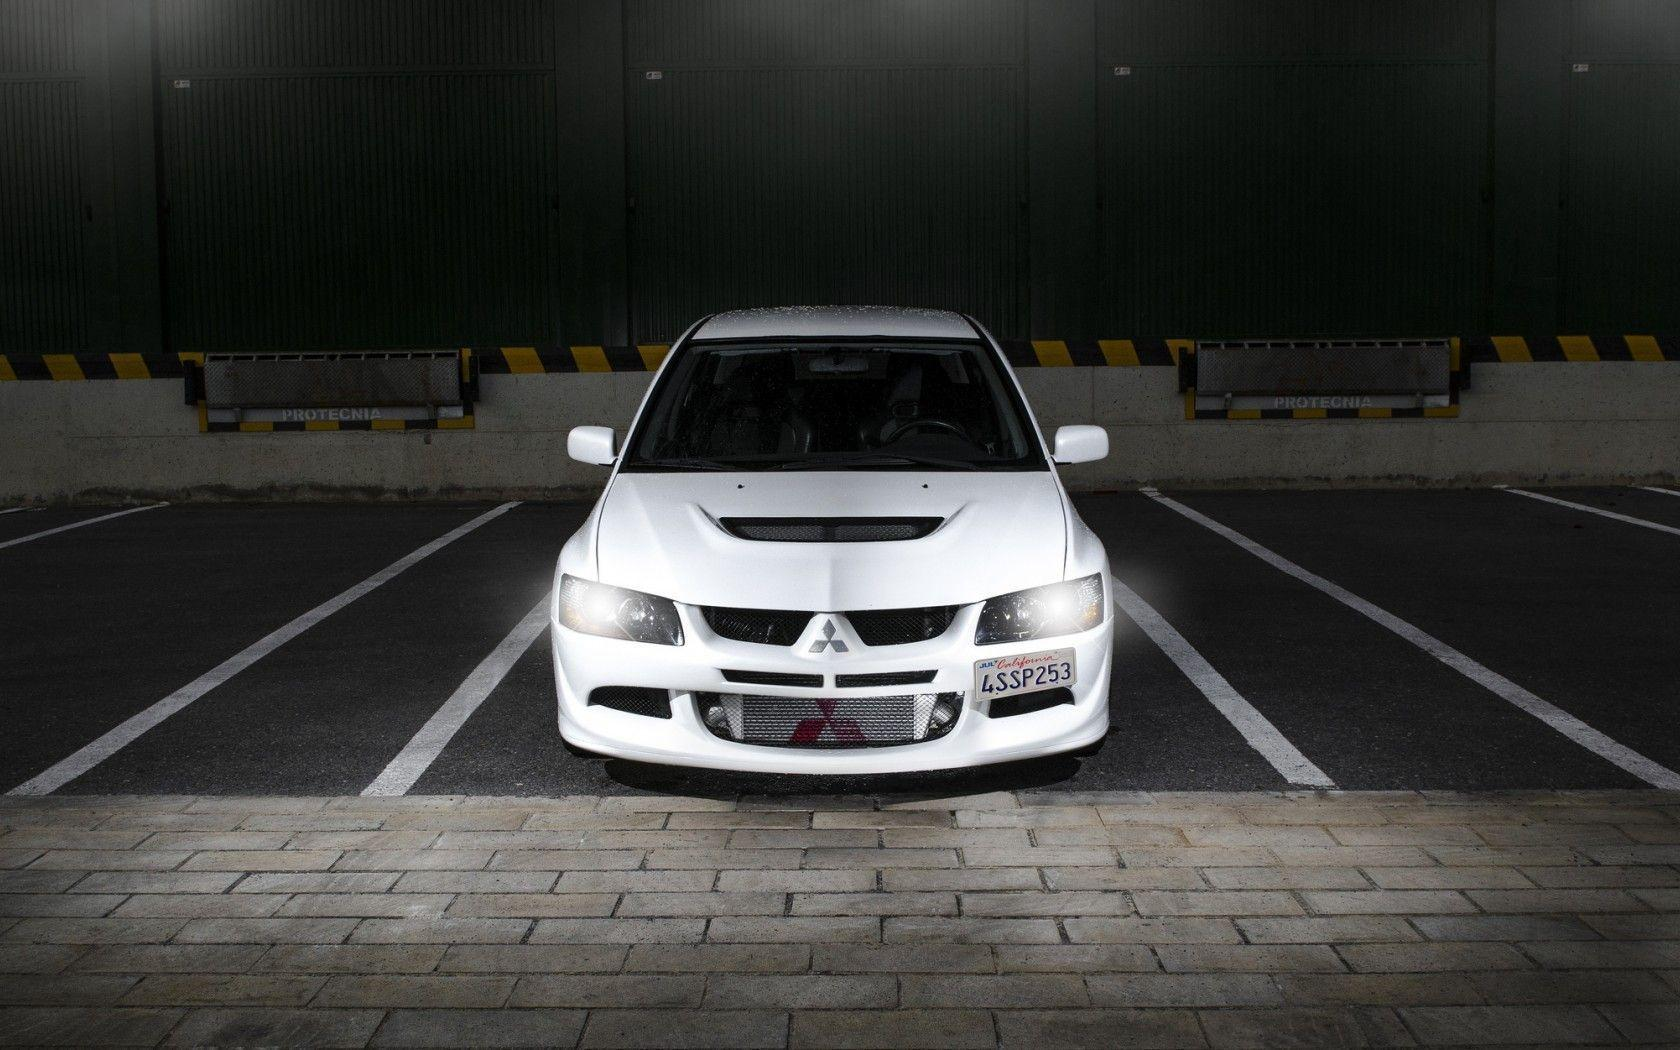 Evo 8 Wallpapers - Wallpaper Cave